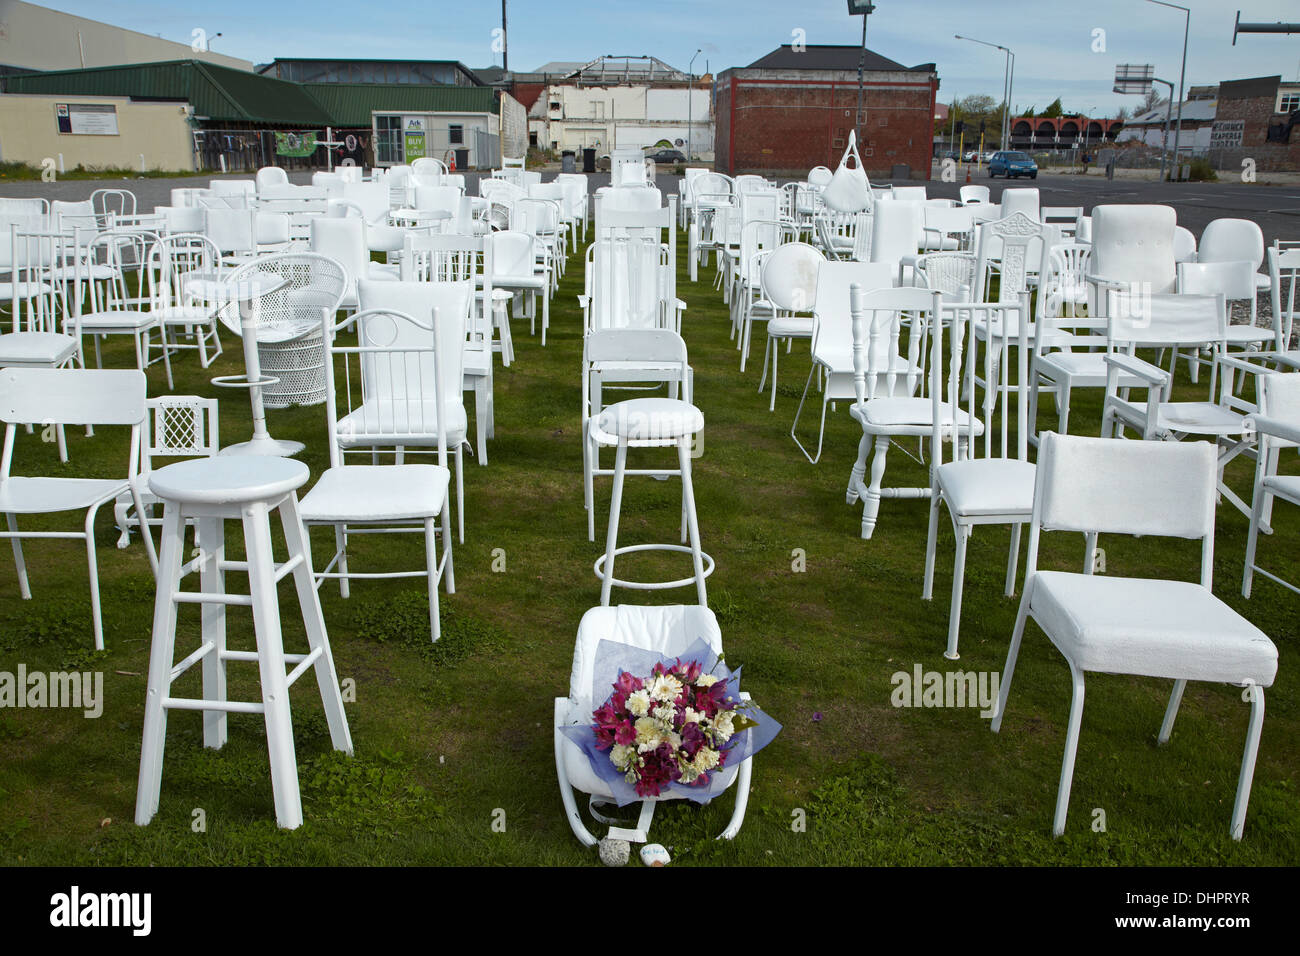 185 Empty Chairs memorial for 2011 earthquake victims, Christchurch, Canterbury, South Island, New Zealand - Stock Image